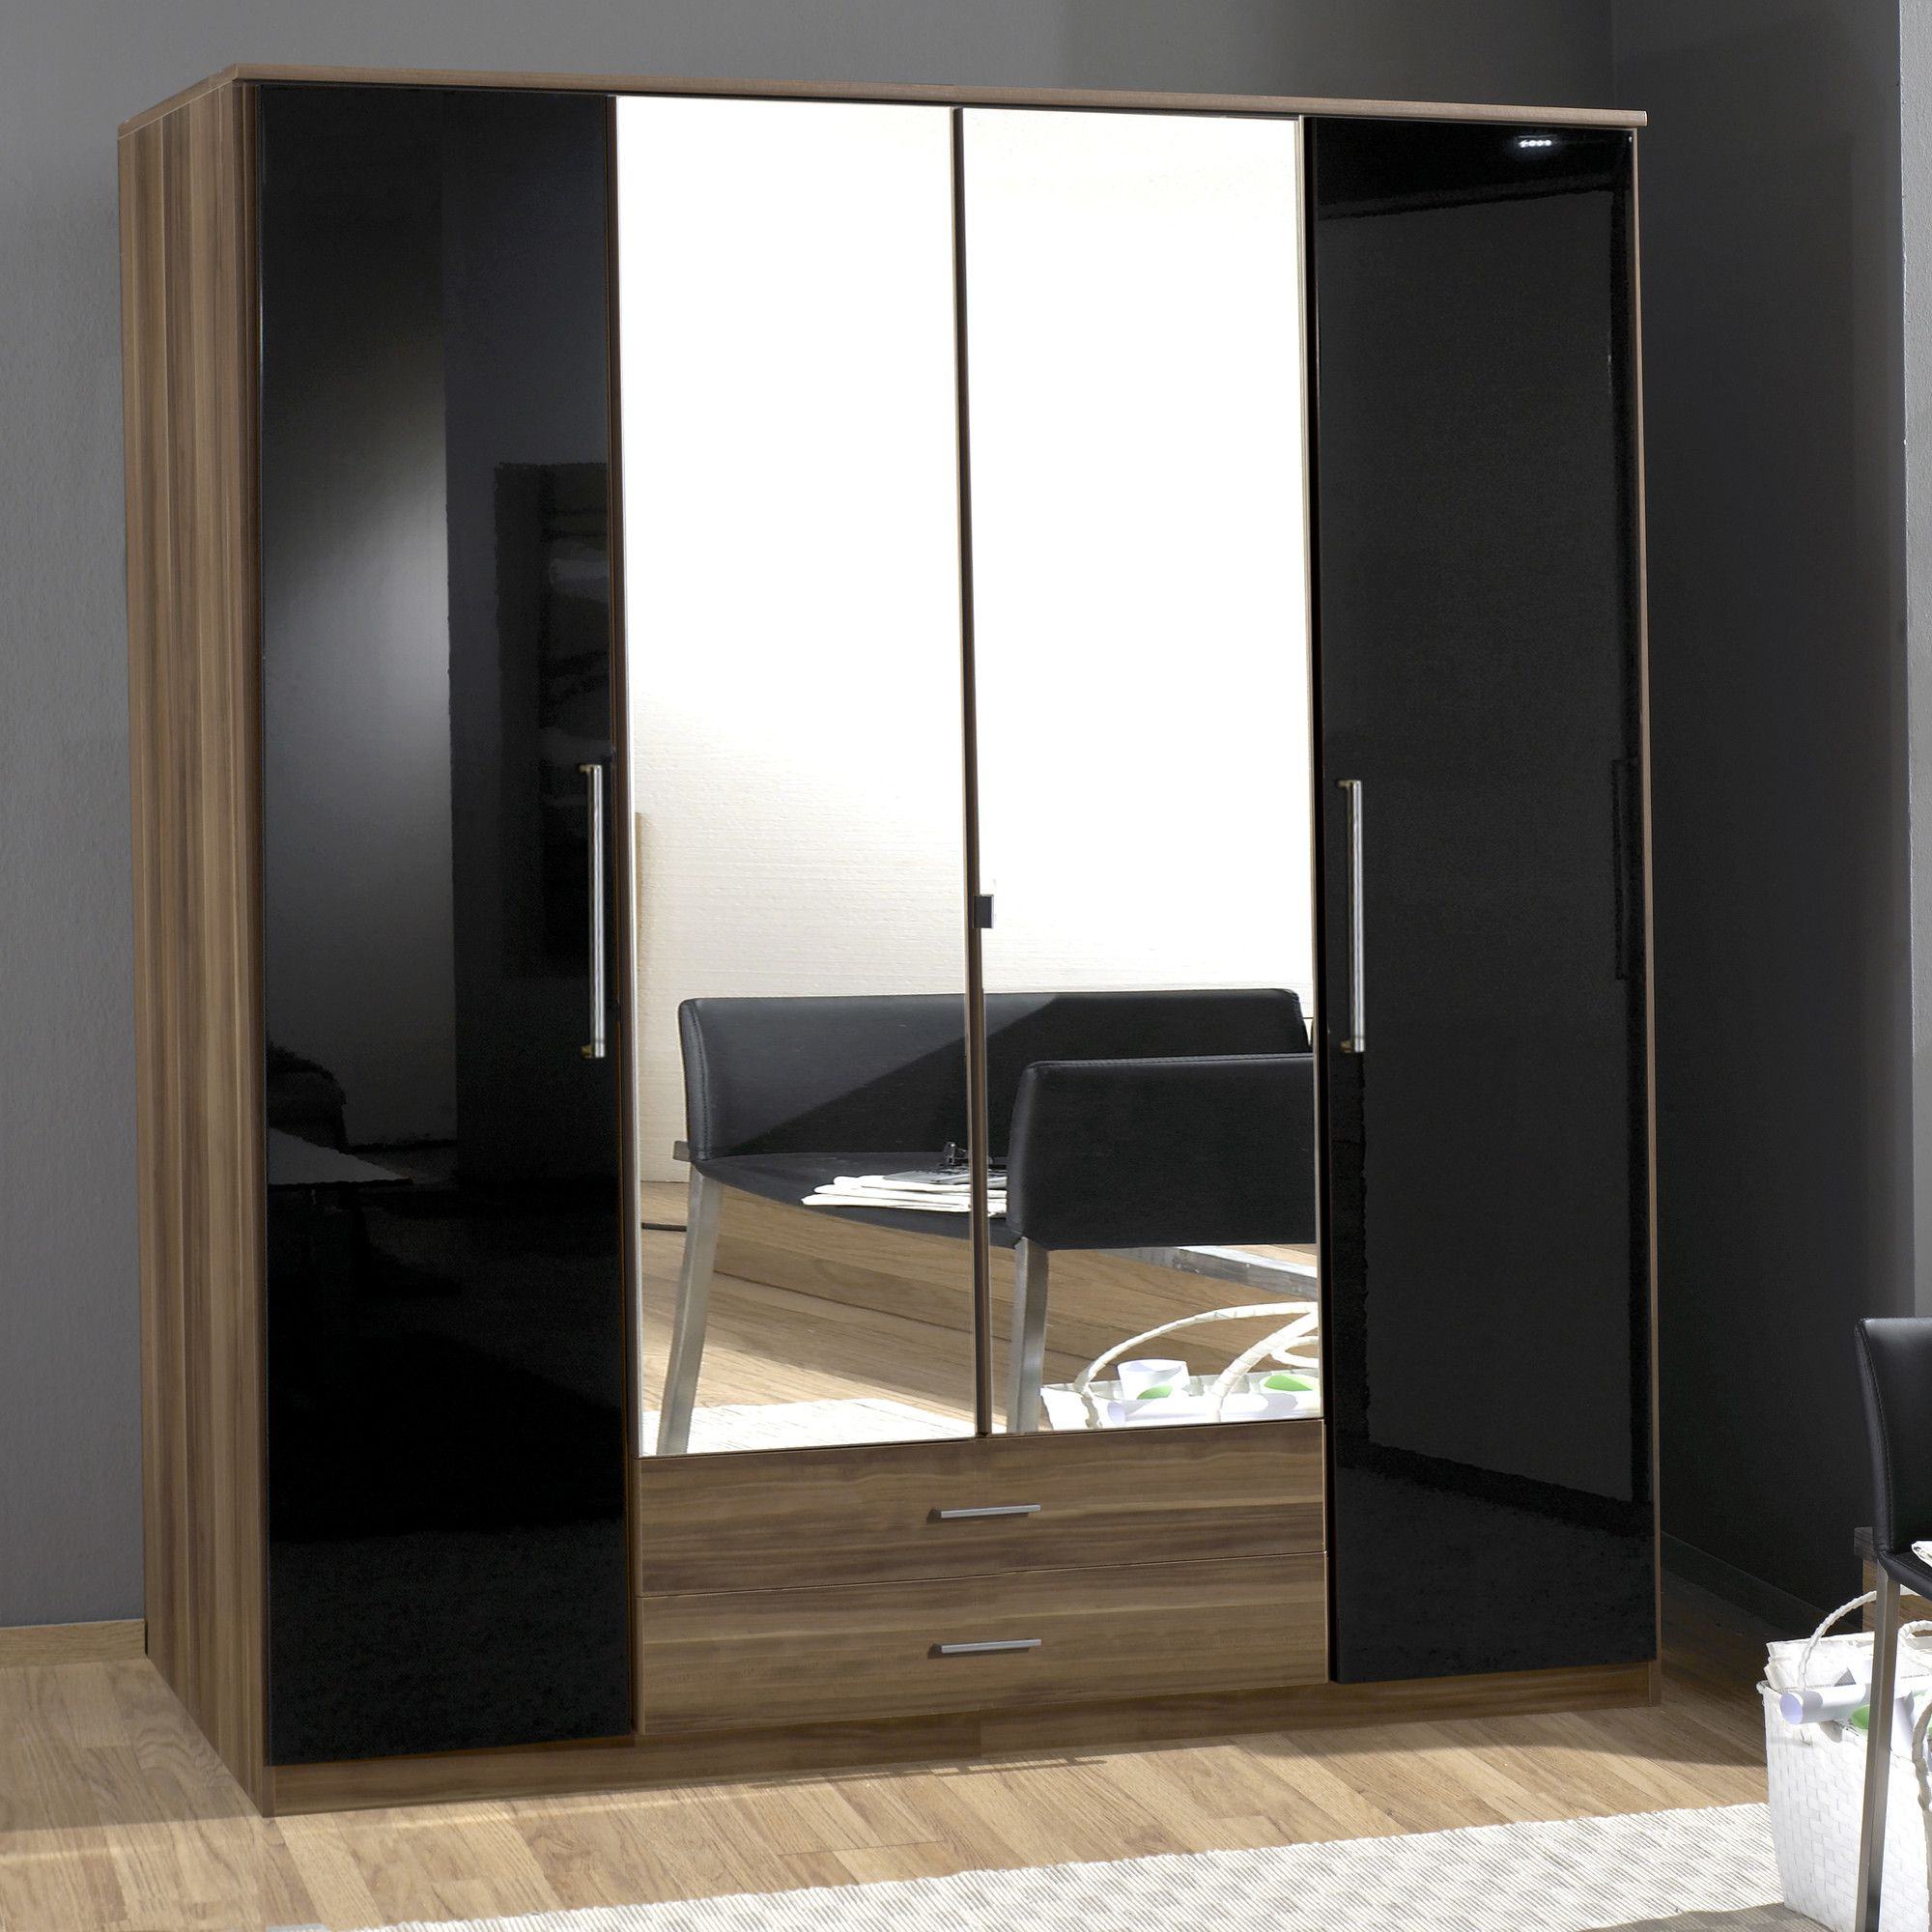 Amos Mann furniture Milano 4 Door 2 Drawer Wardrobe - Black and Walnut at Tesco Direct